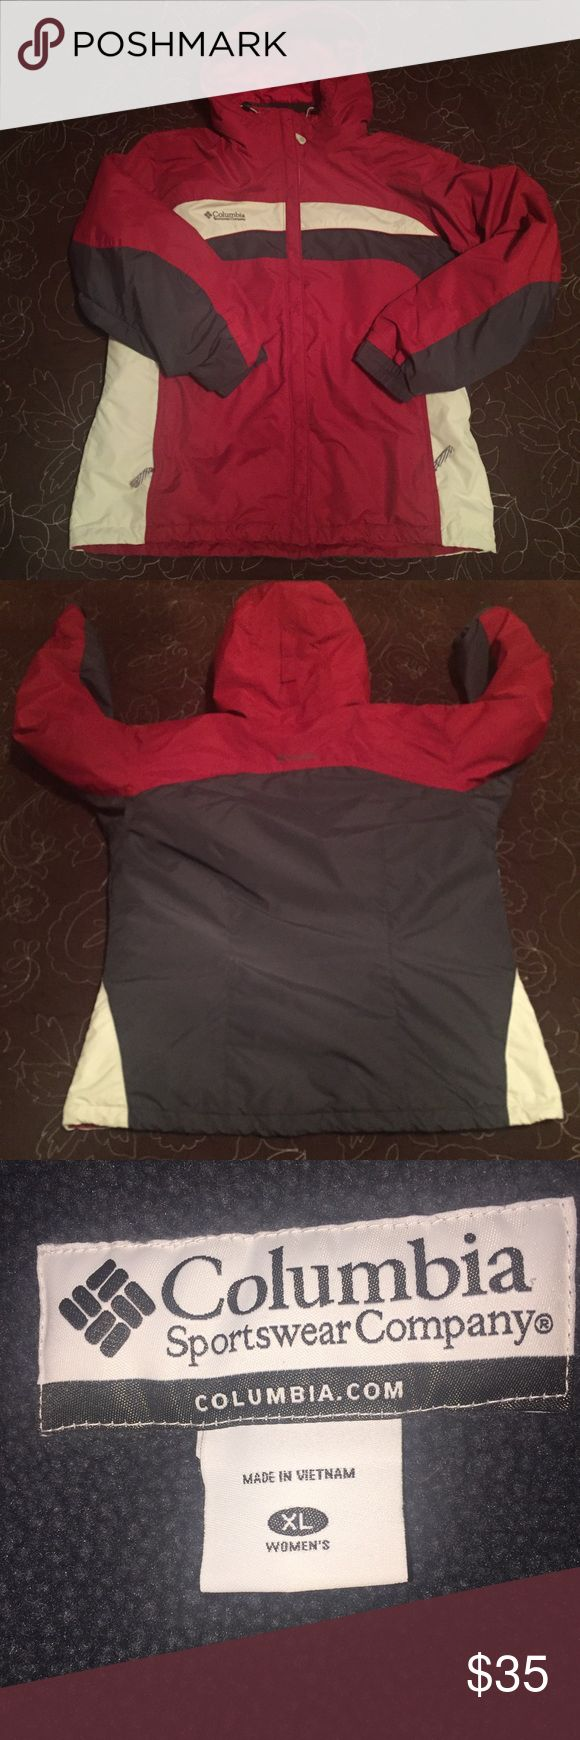 "Columbia Red Parka Womens Sz XL Xtra Large Columbia Red Parka Womens Sz XL Xtra Large. Faint defect on front right bottom, please see pictures. Measurements  Length 30"" Armpit to armpit-48"" Columbia Jackets & Coats"